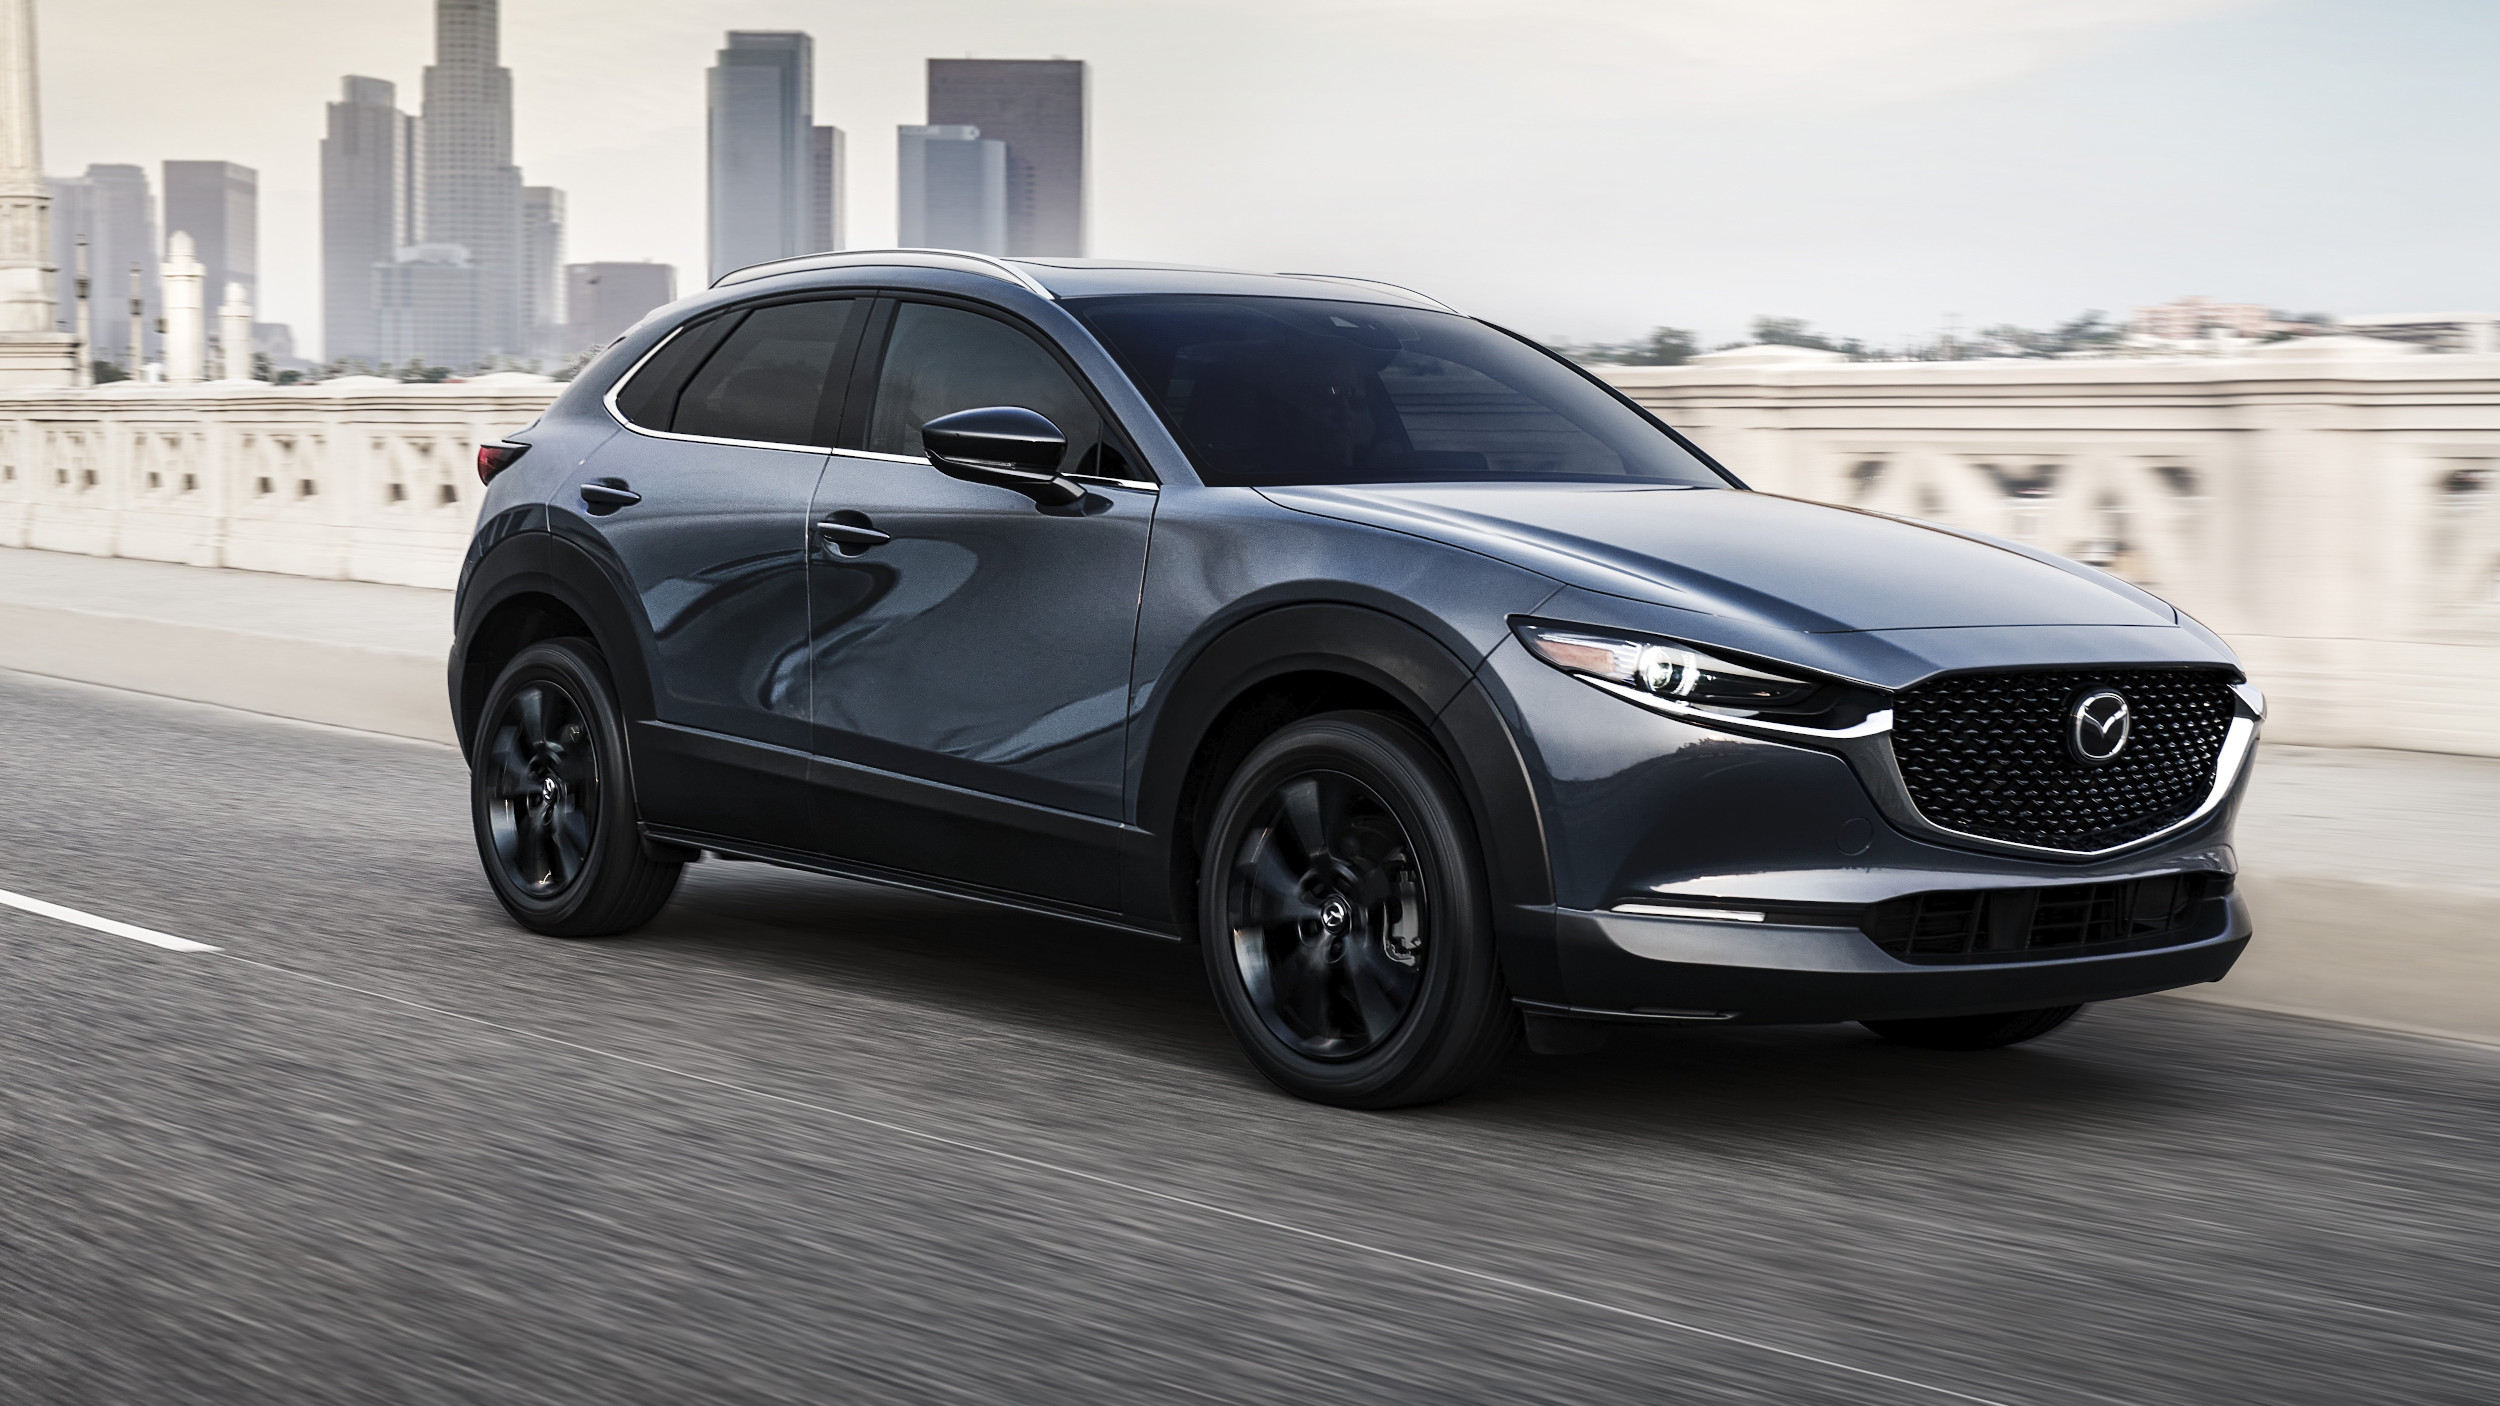 Mazda CX-30 gains 227 hp Turbo model